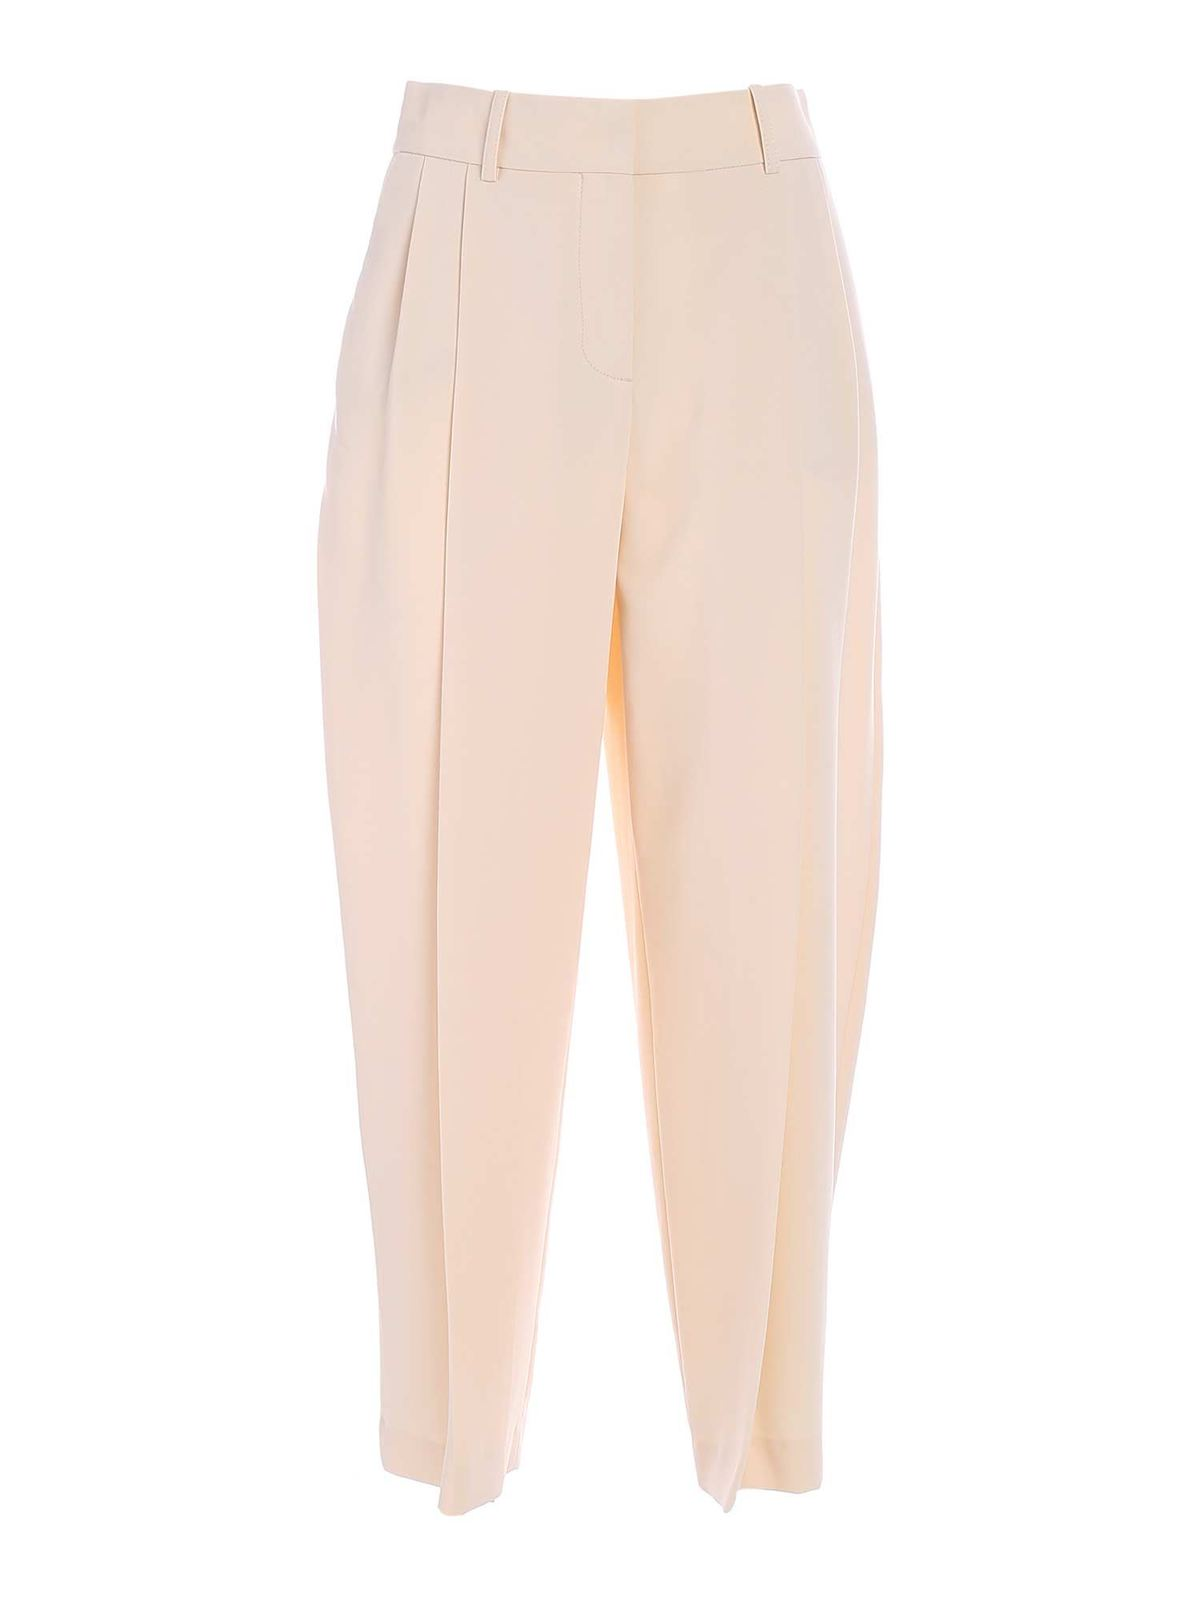 See By Chloé WIDE LEG PANTS IN BEIGE